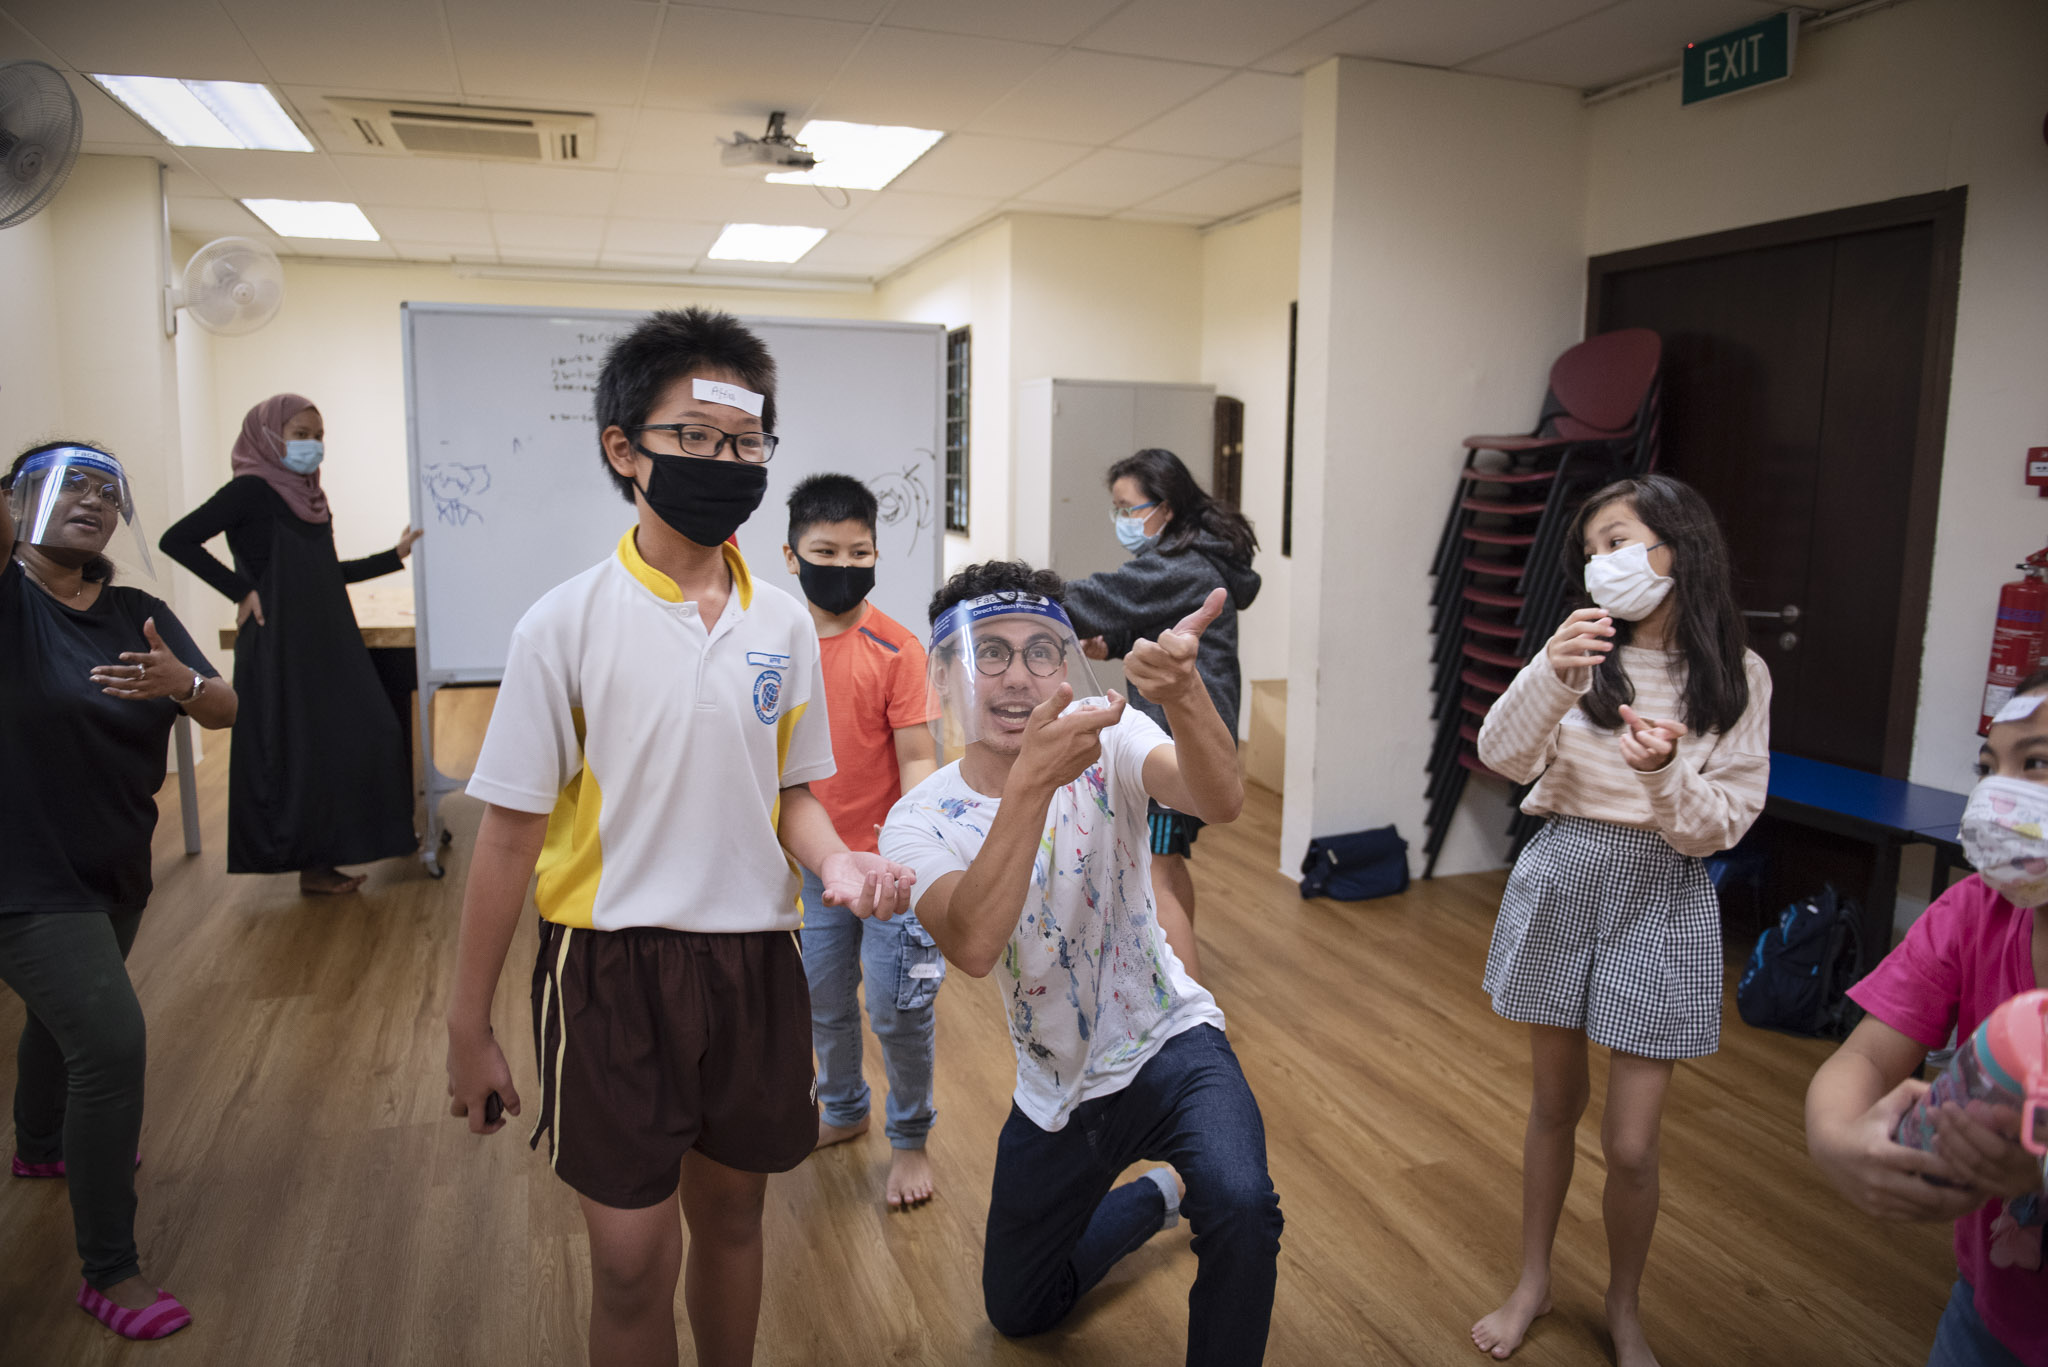 The drama techniques of theatre help children open up and encourage freedom of expression